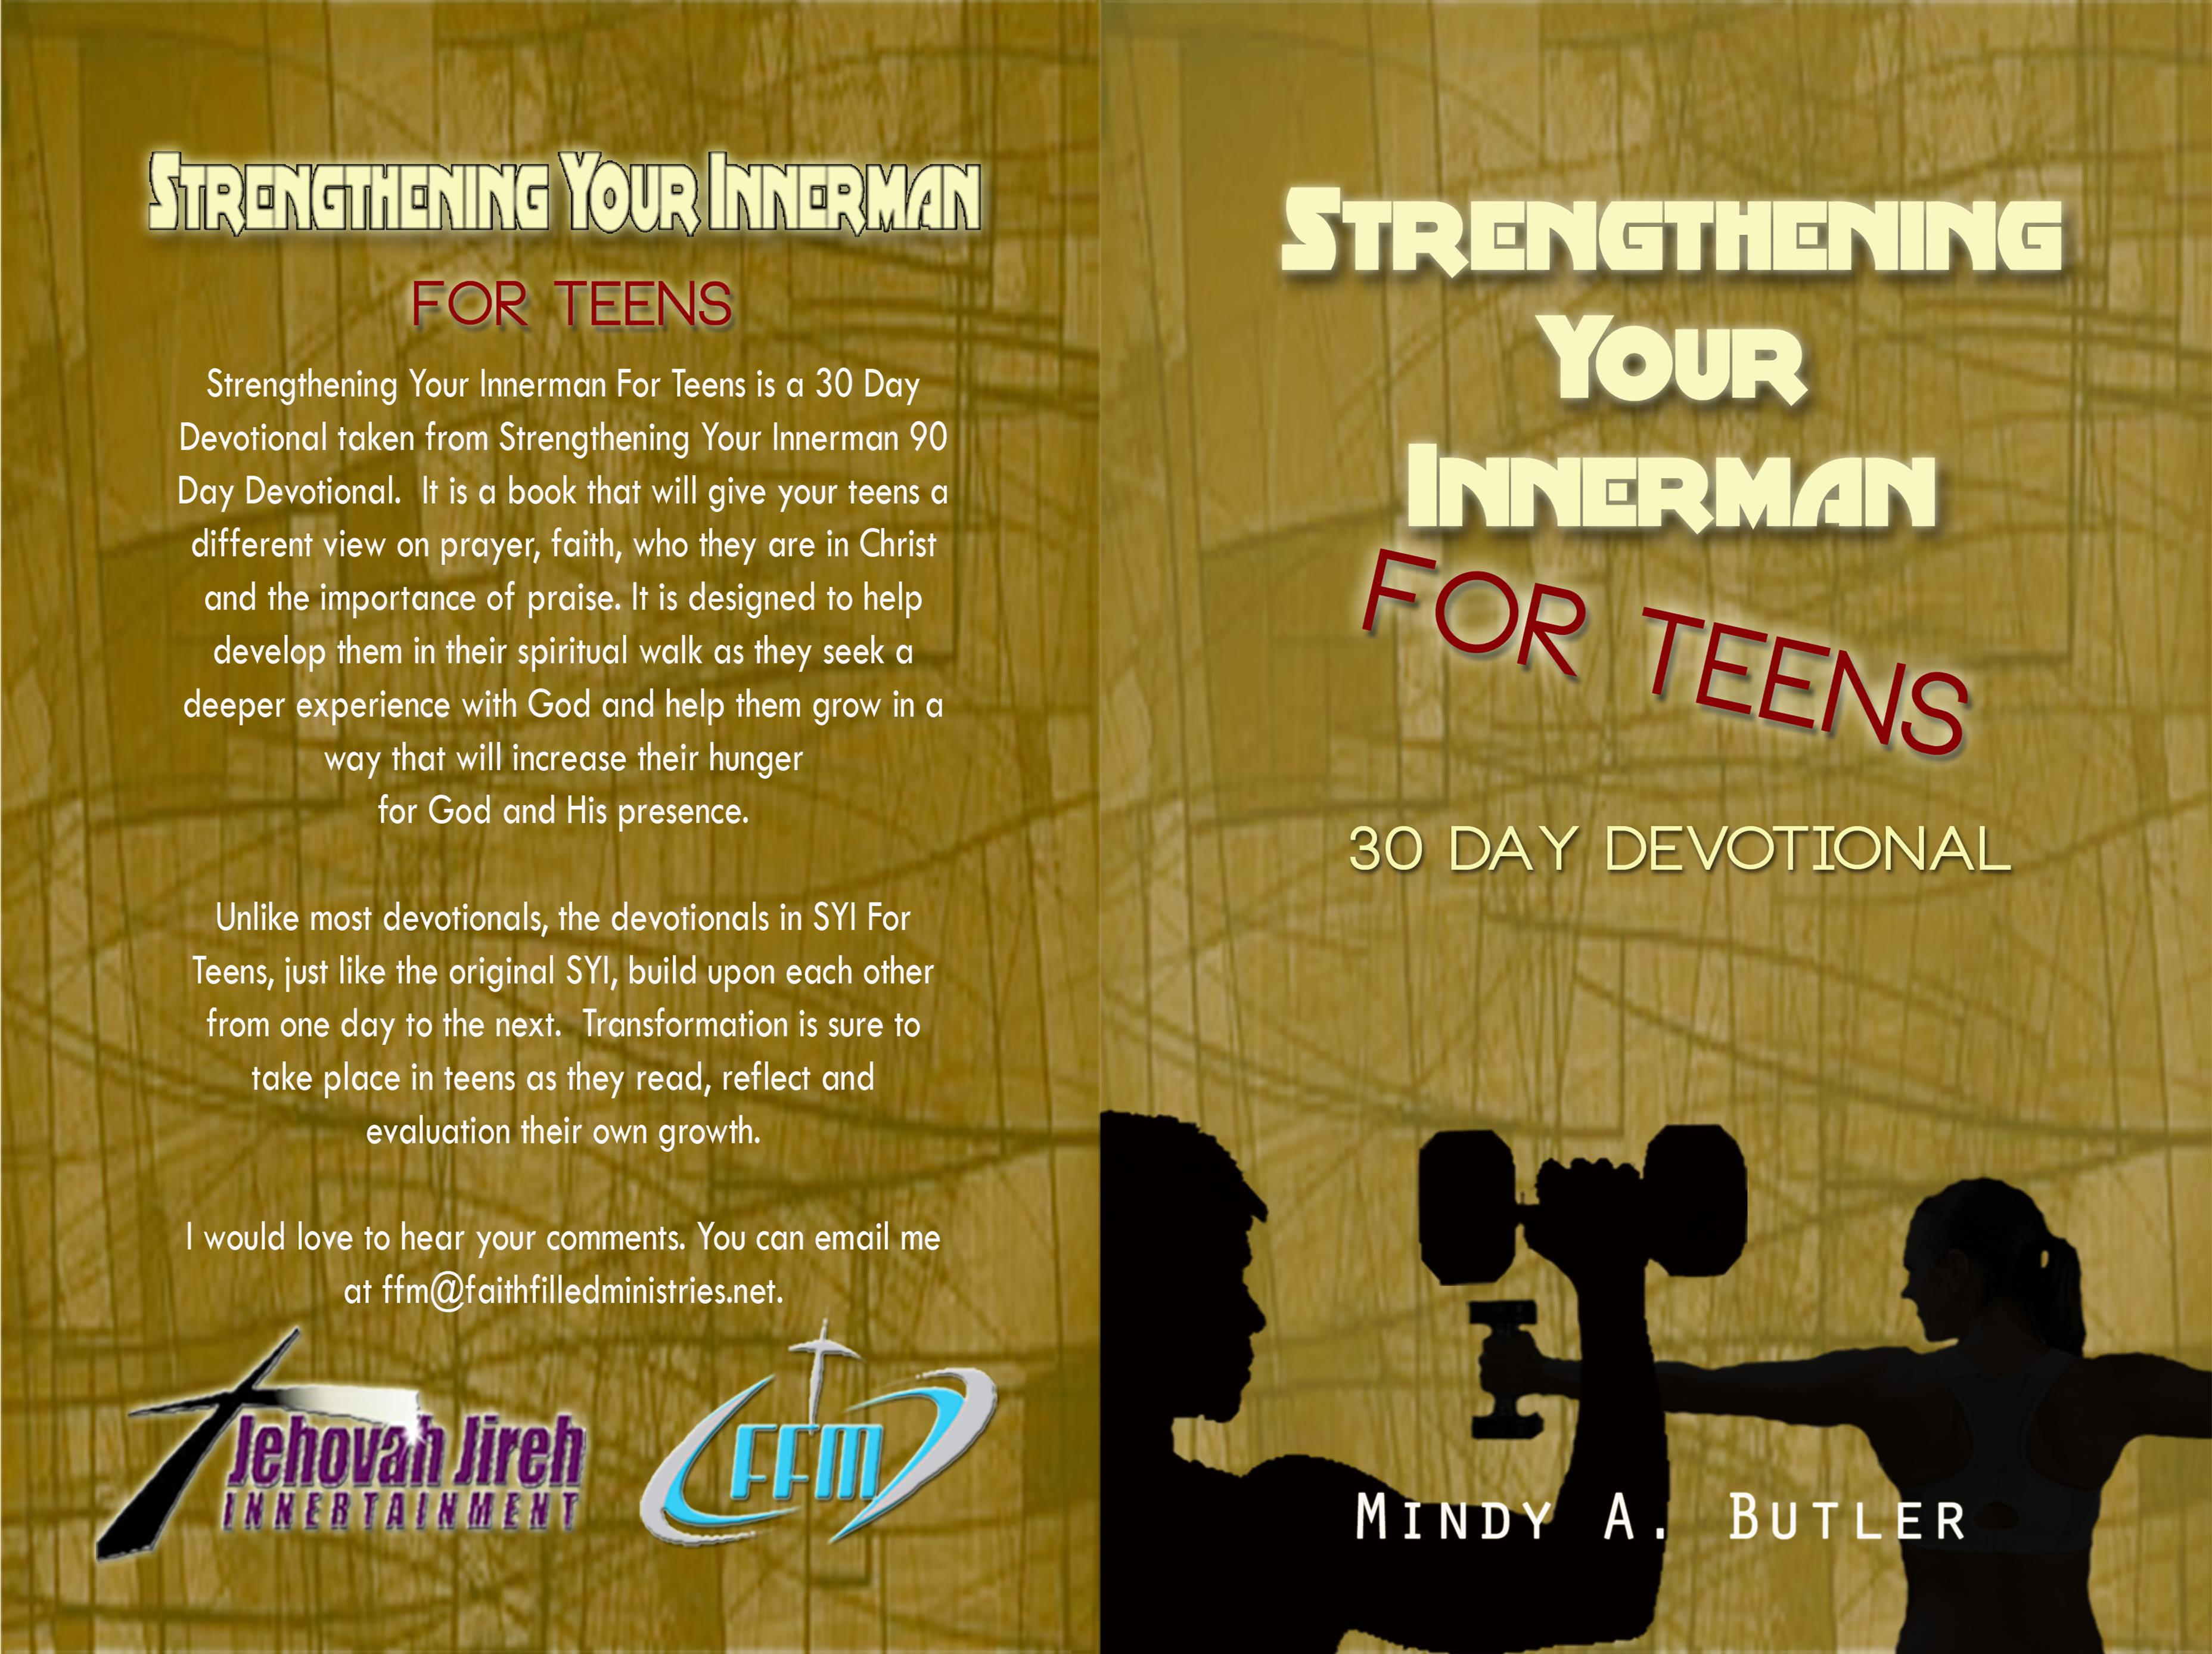 Strengthening Your Innerman for Teens cover image